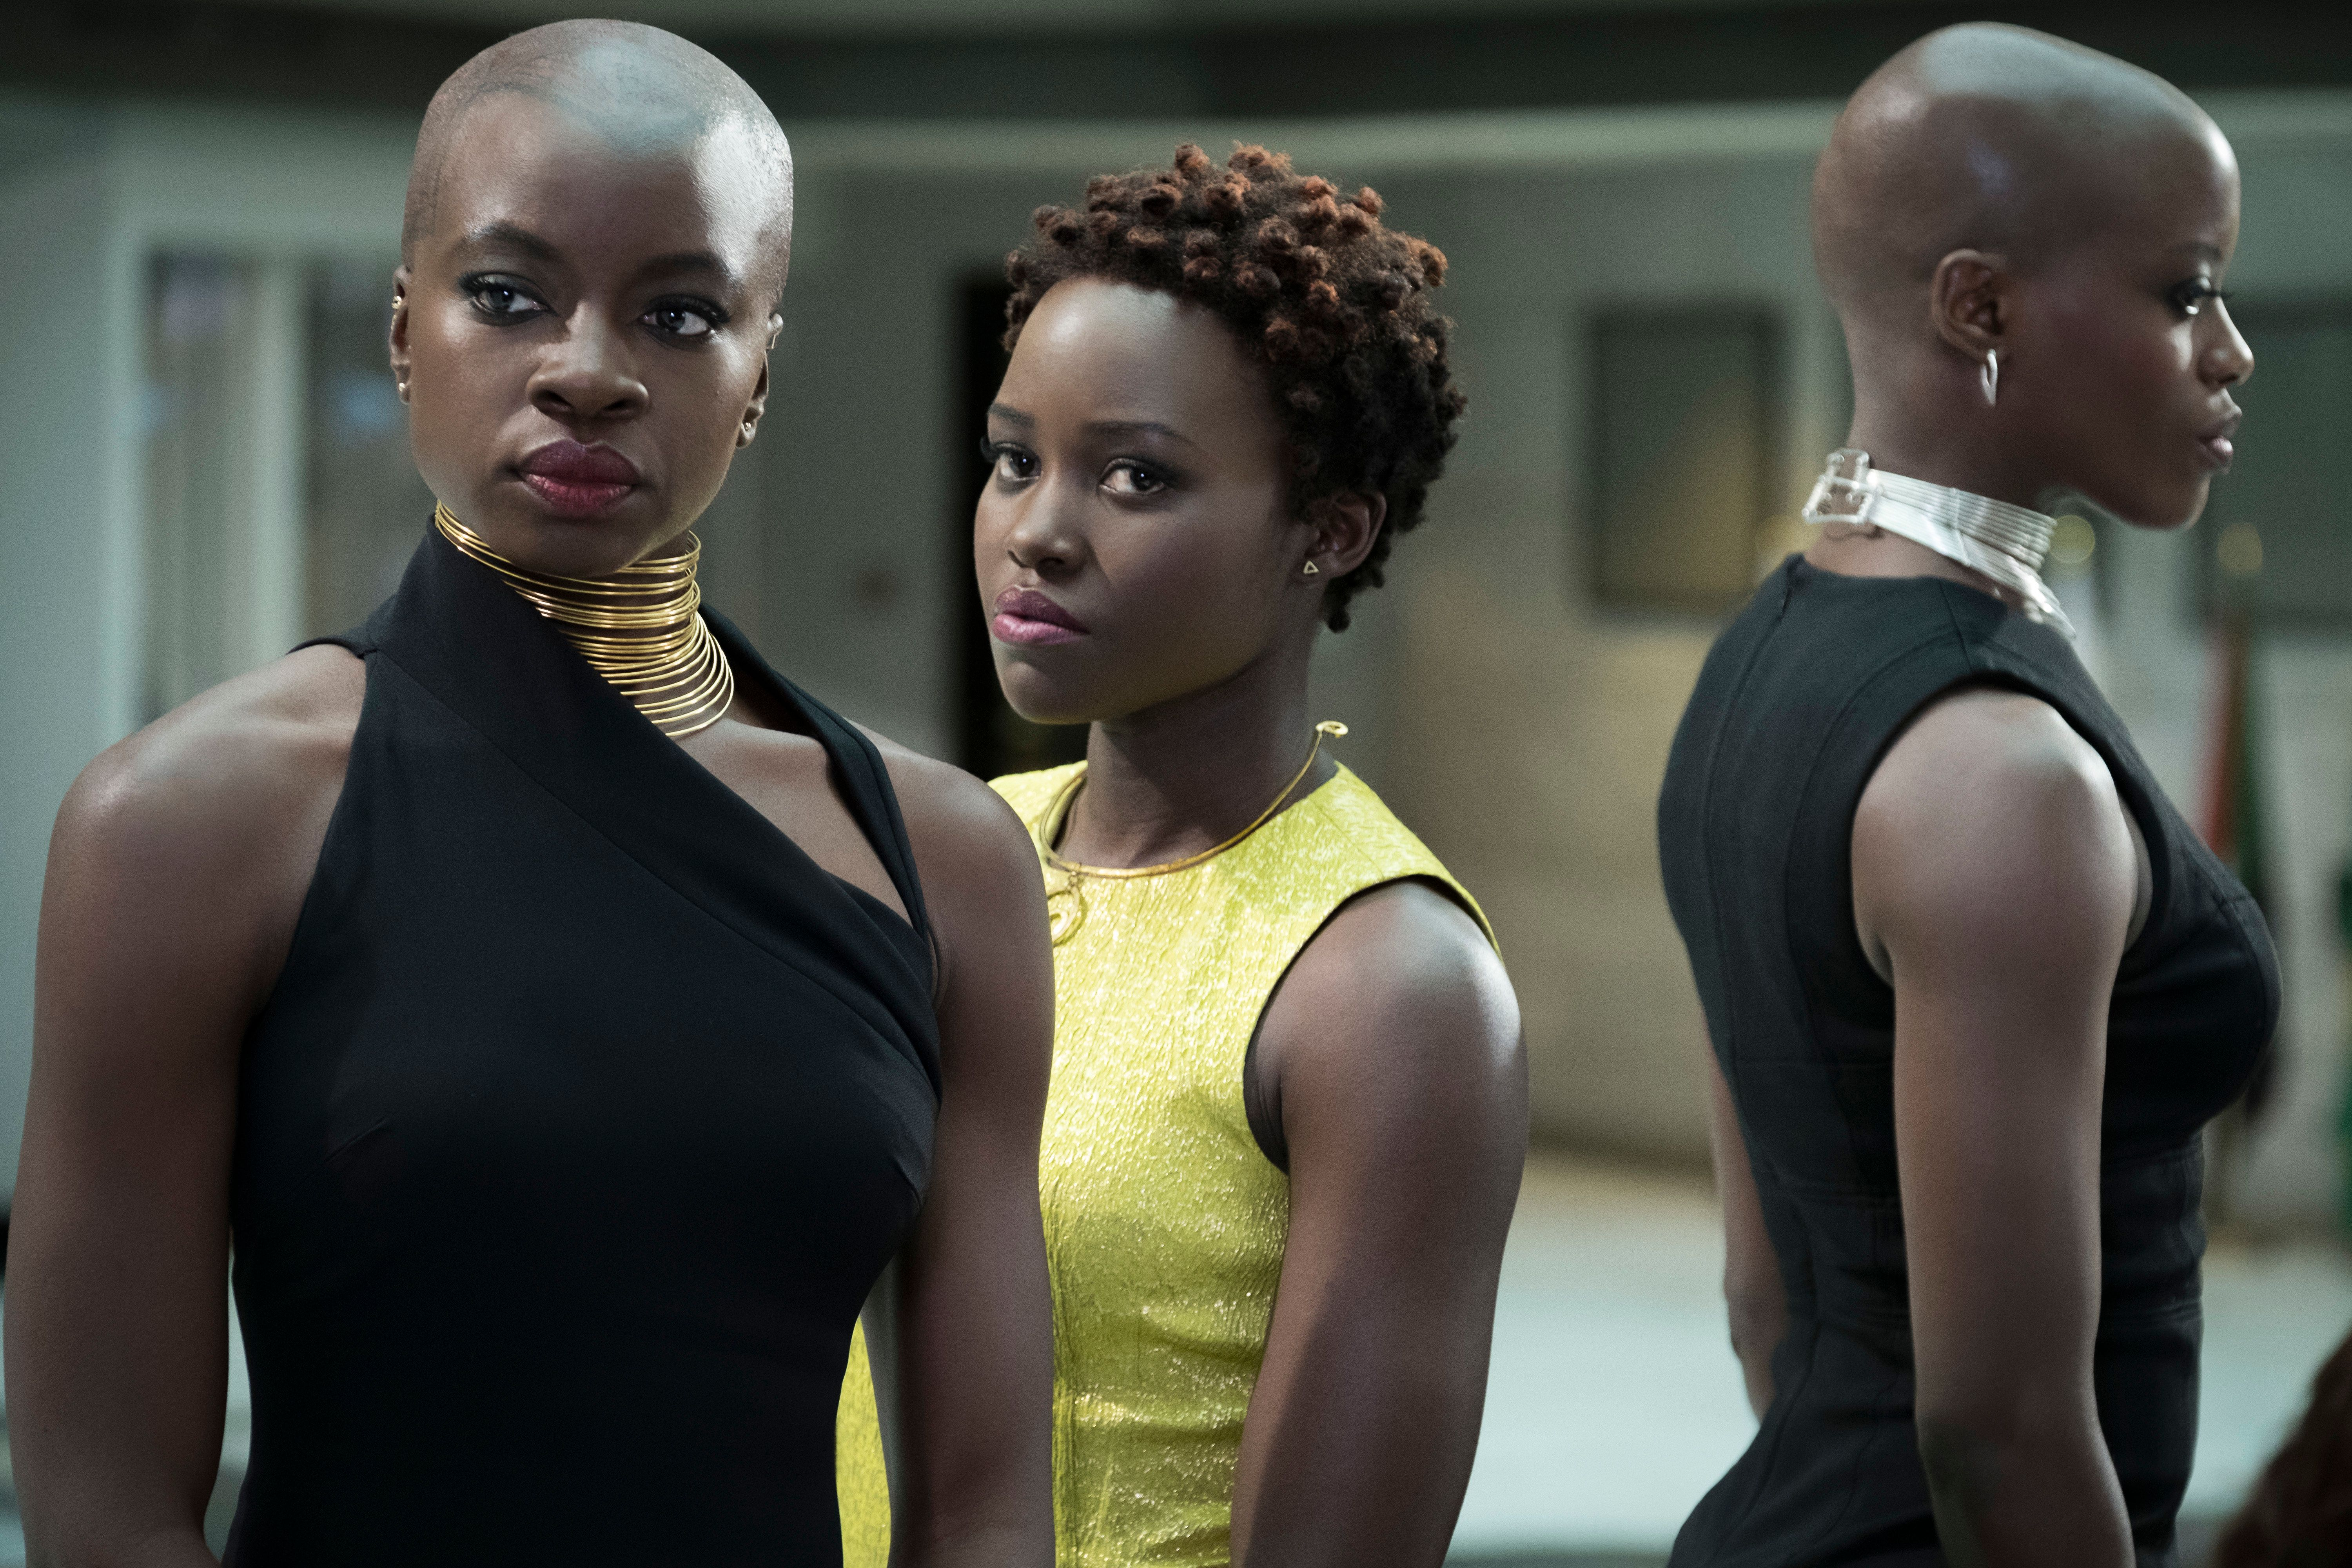 Danai Gurira Lupita Nyongo and Florence Kasumba in Black Panther